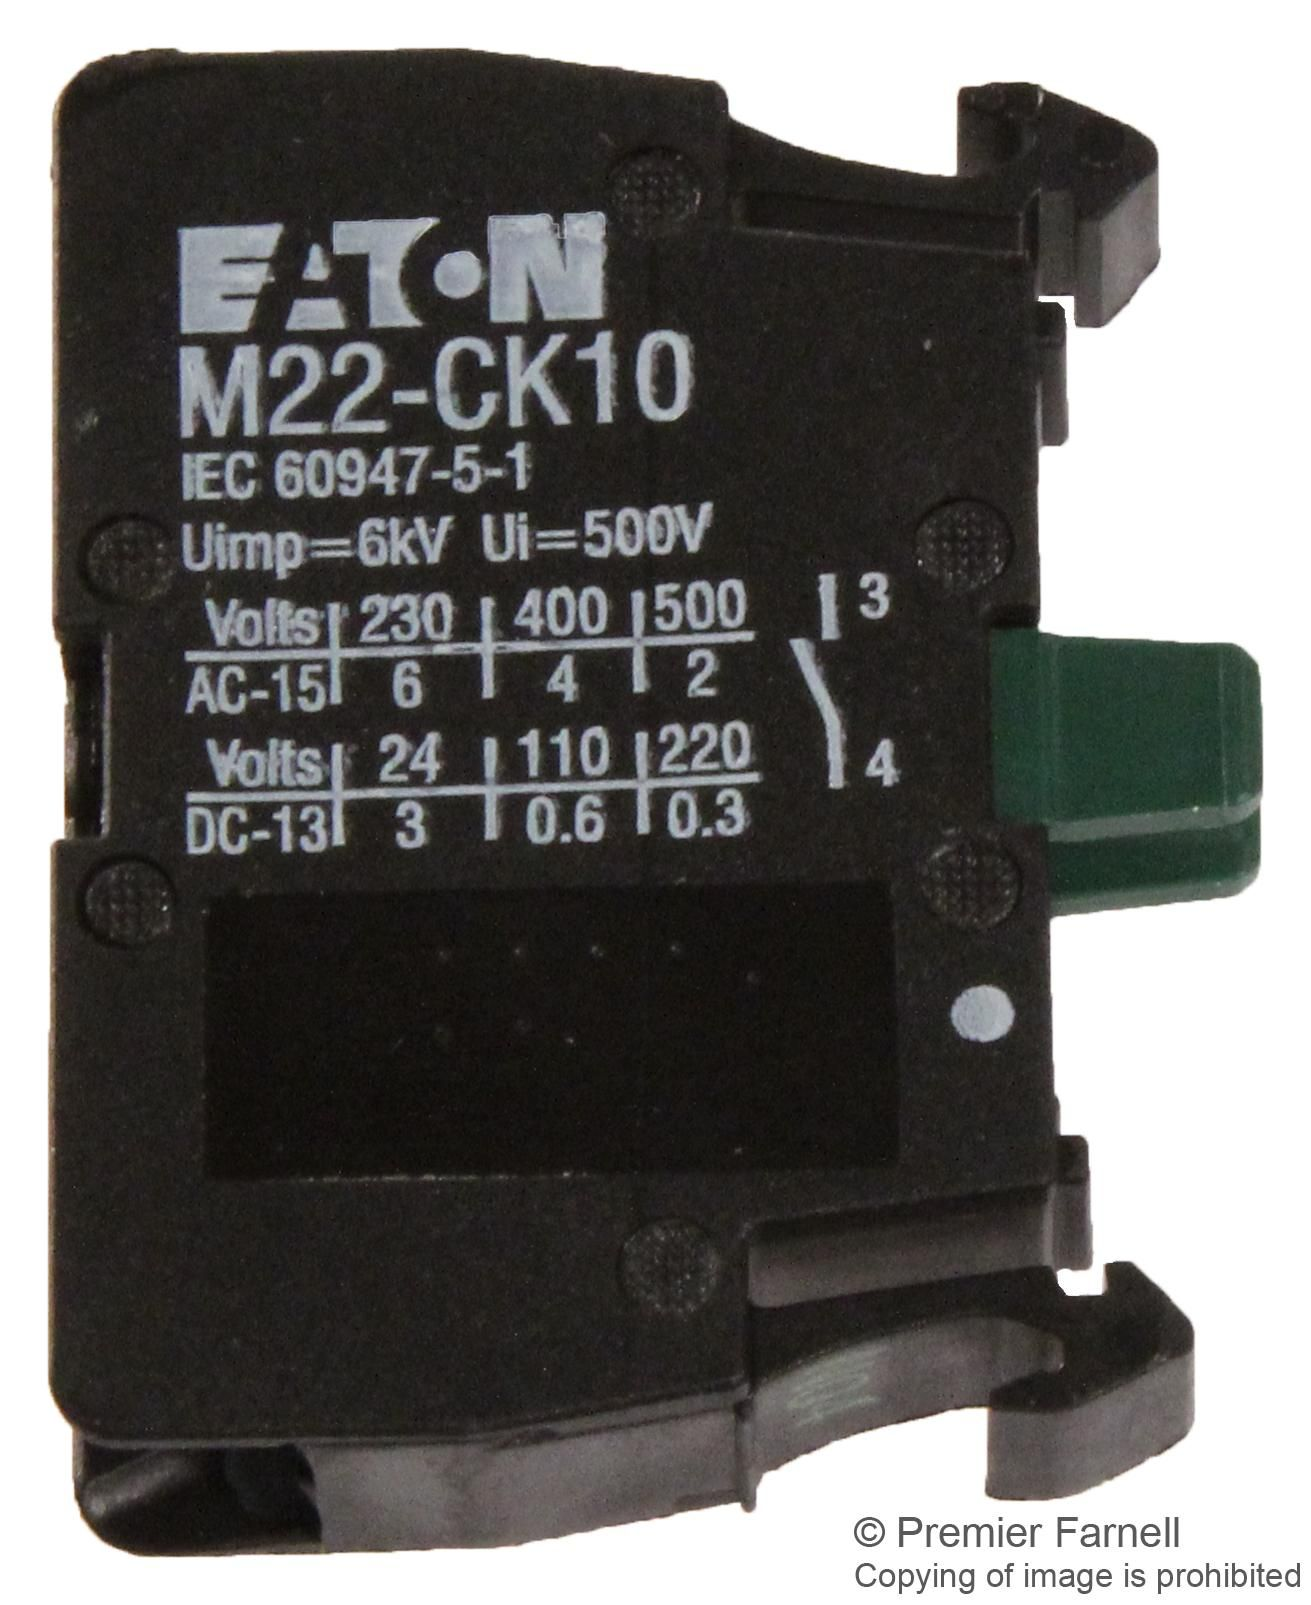 M22-CK10 - Contact Block, 6 A, 500 V, 1 Pole, Cage Clamp